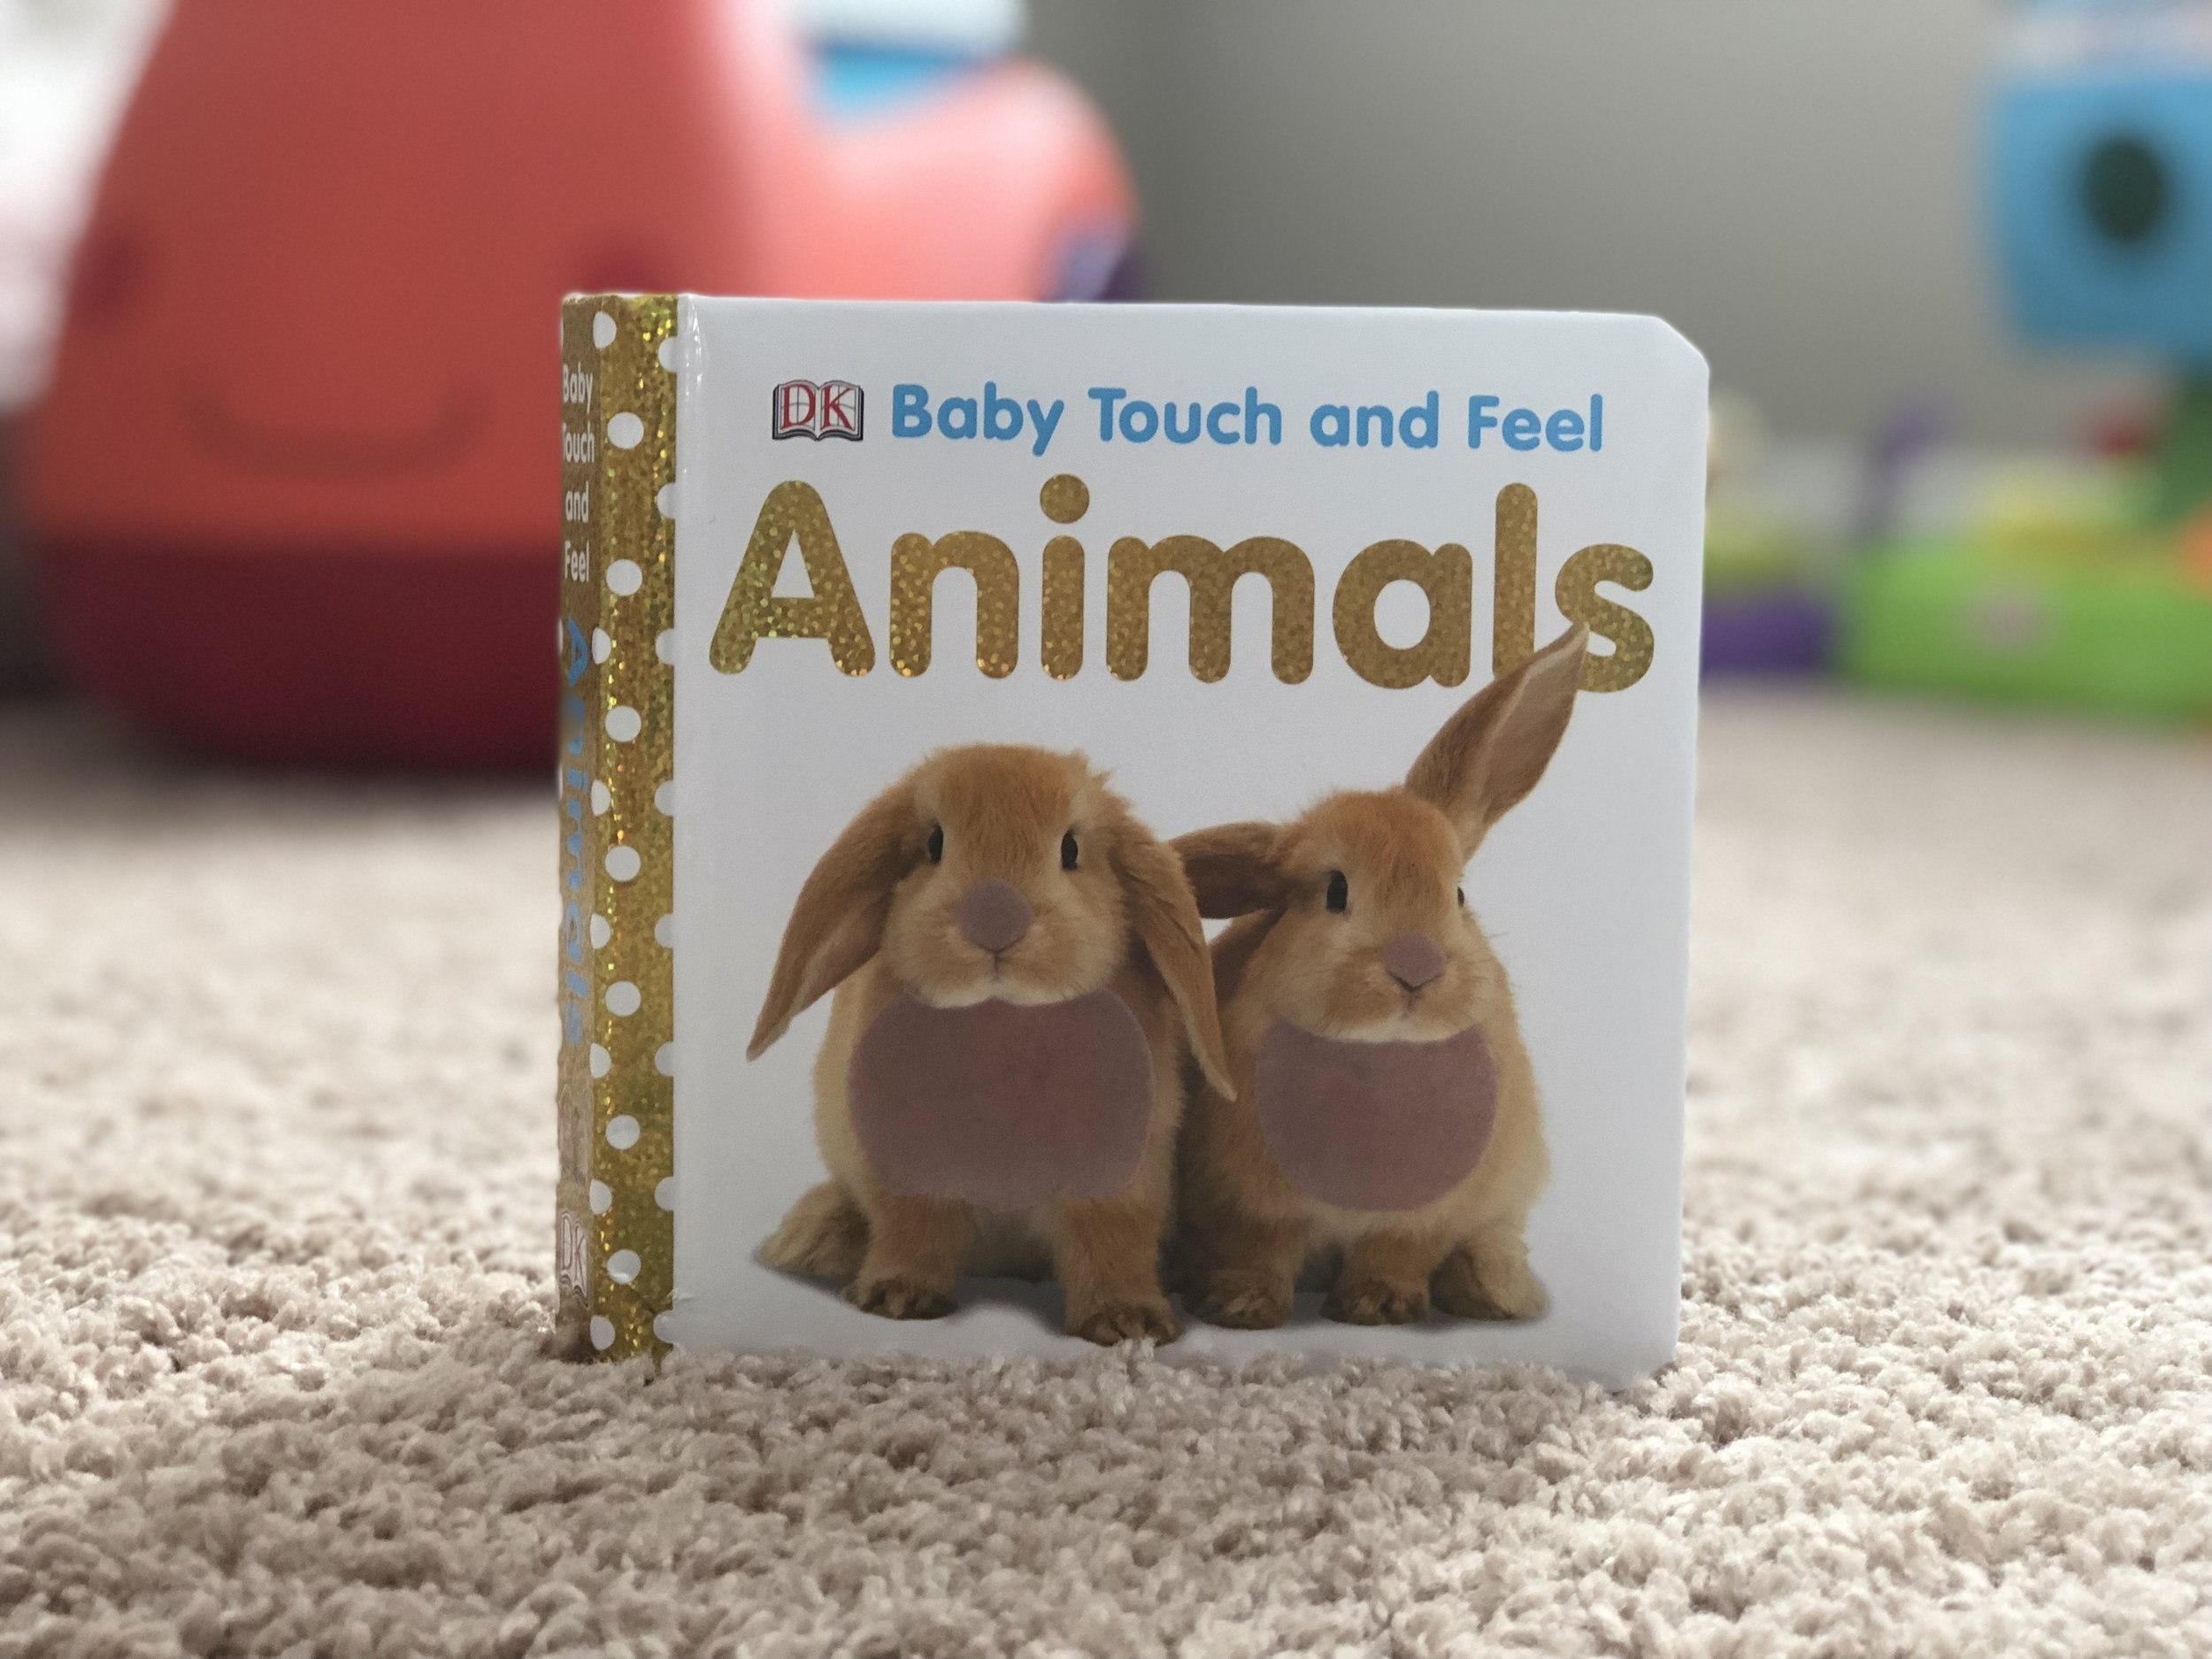 Baby Touch and Feel Animals a lift the flap book